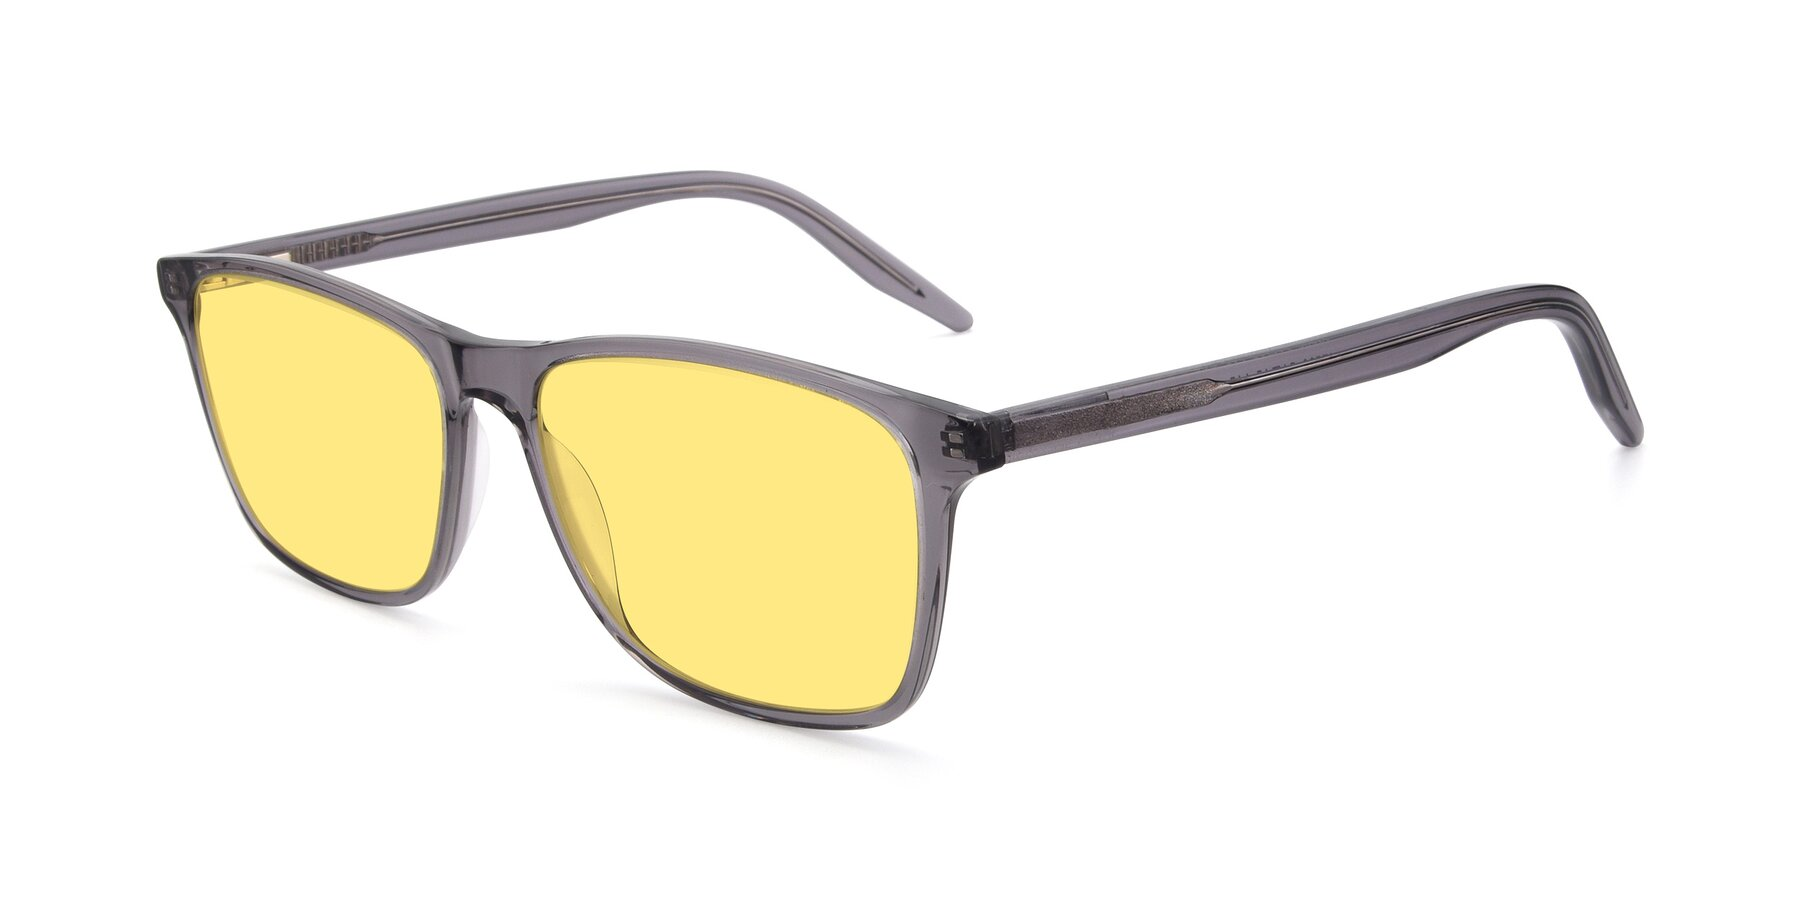 Angle of 17500 in Transparent Grey with Medium Yellow Tinted Lenses